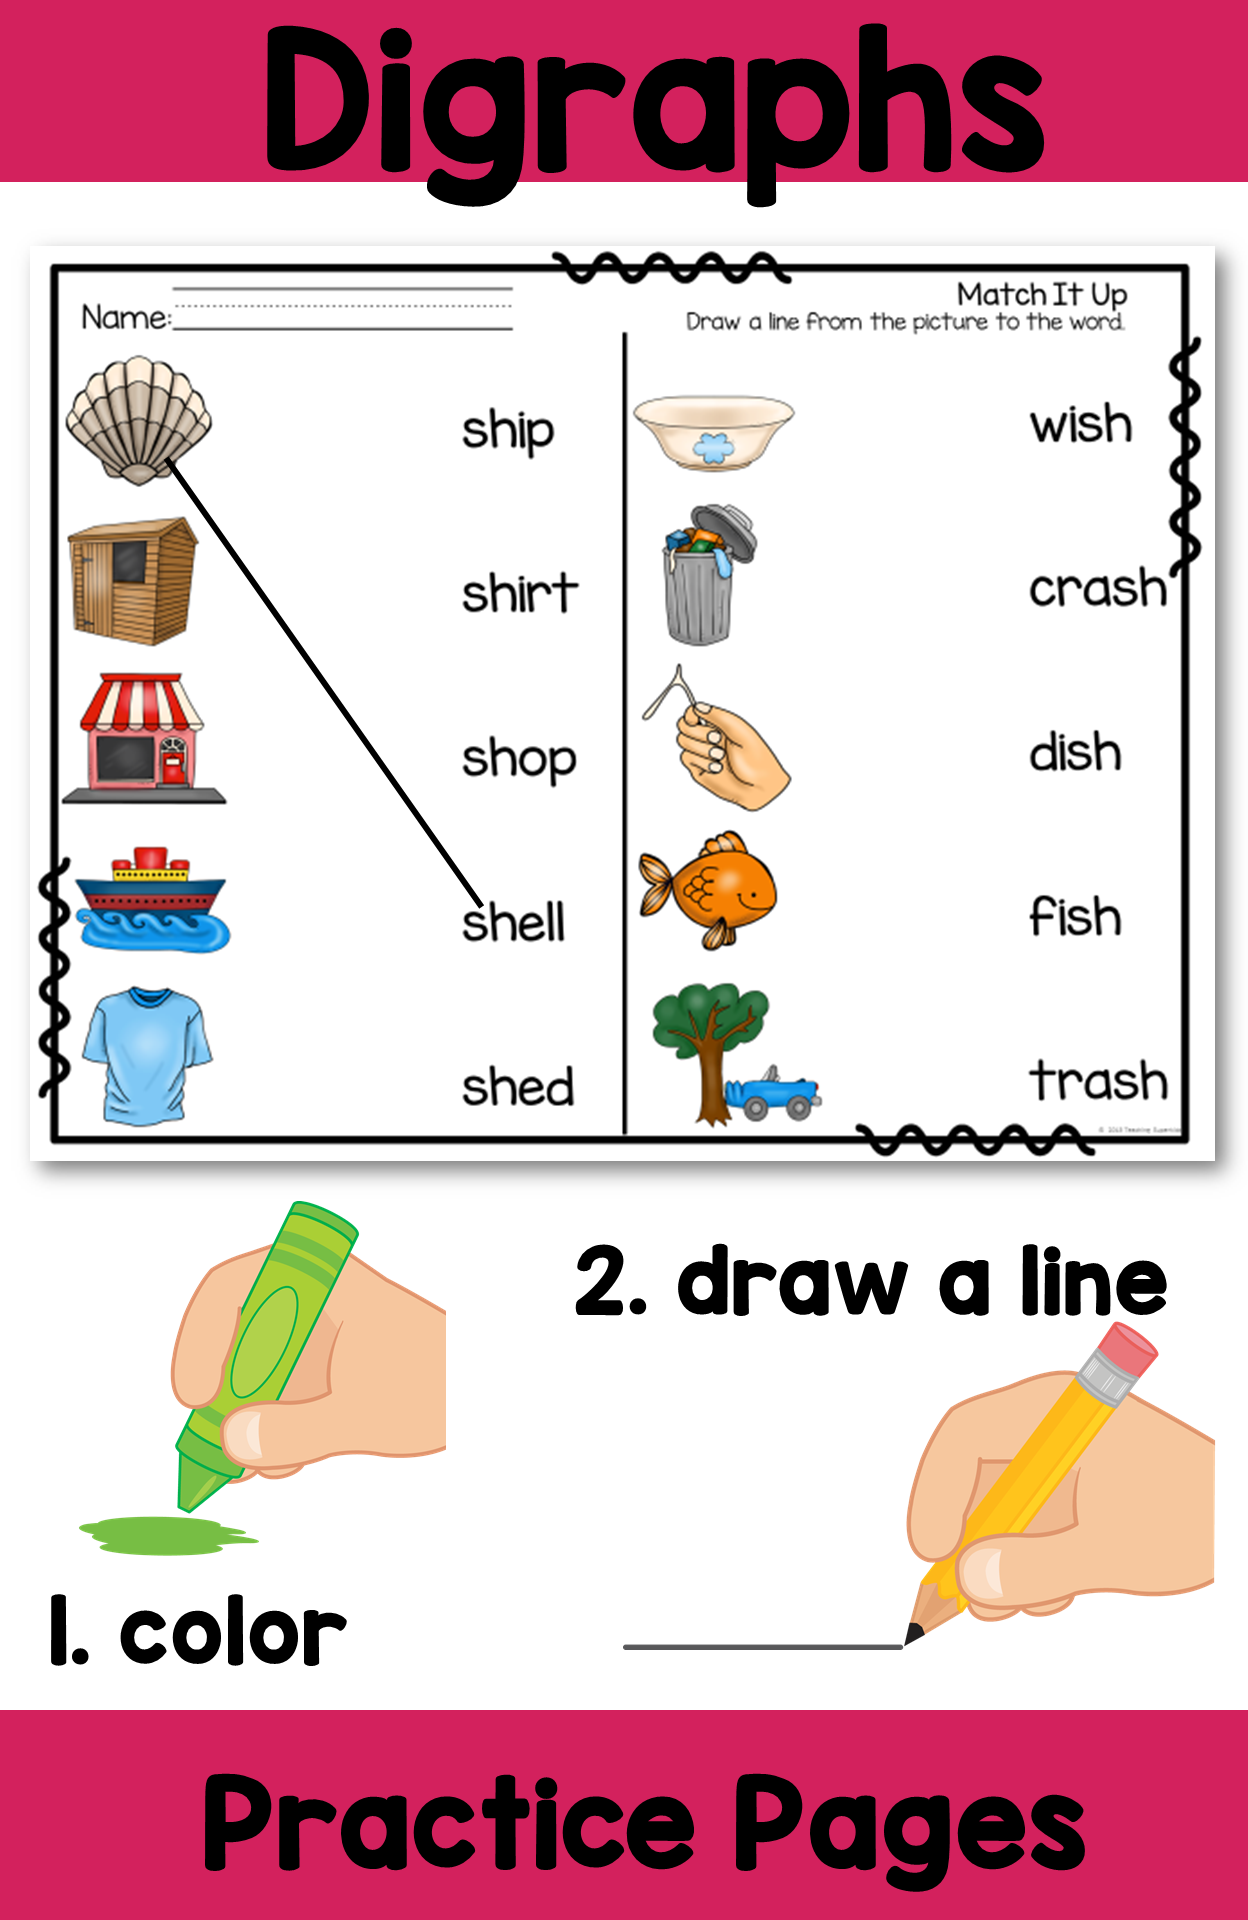 Worksheets Digraph Worksheets sh digraphs worksheets teacher created resources and word search digraph practice pages color the picture then draw a line